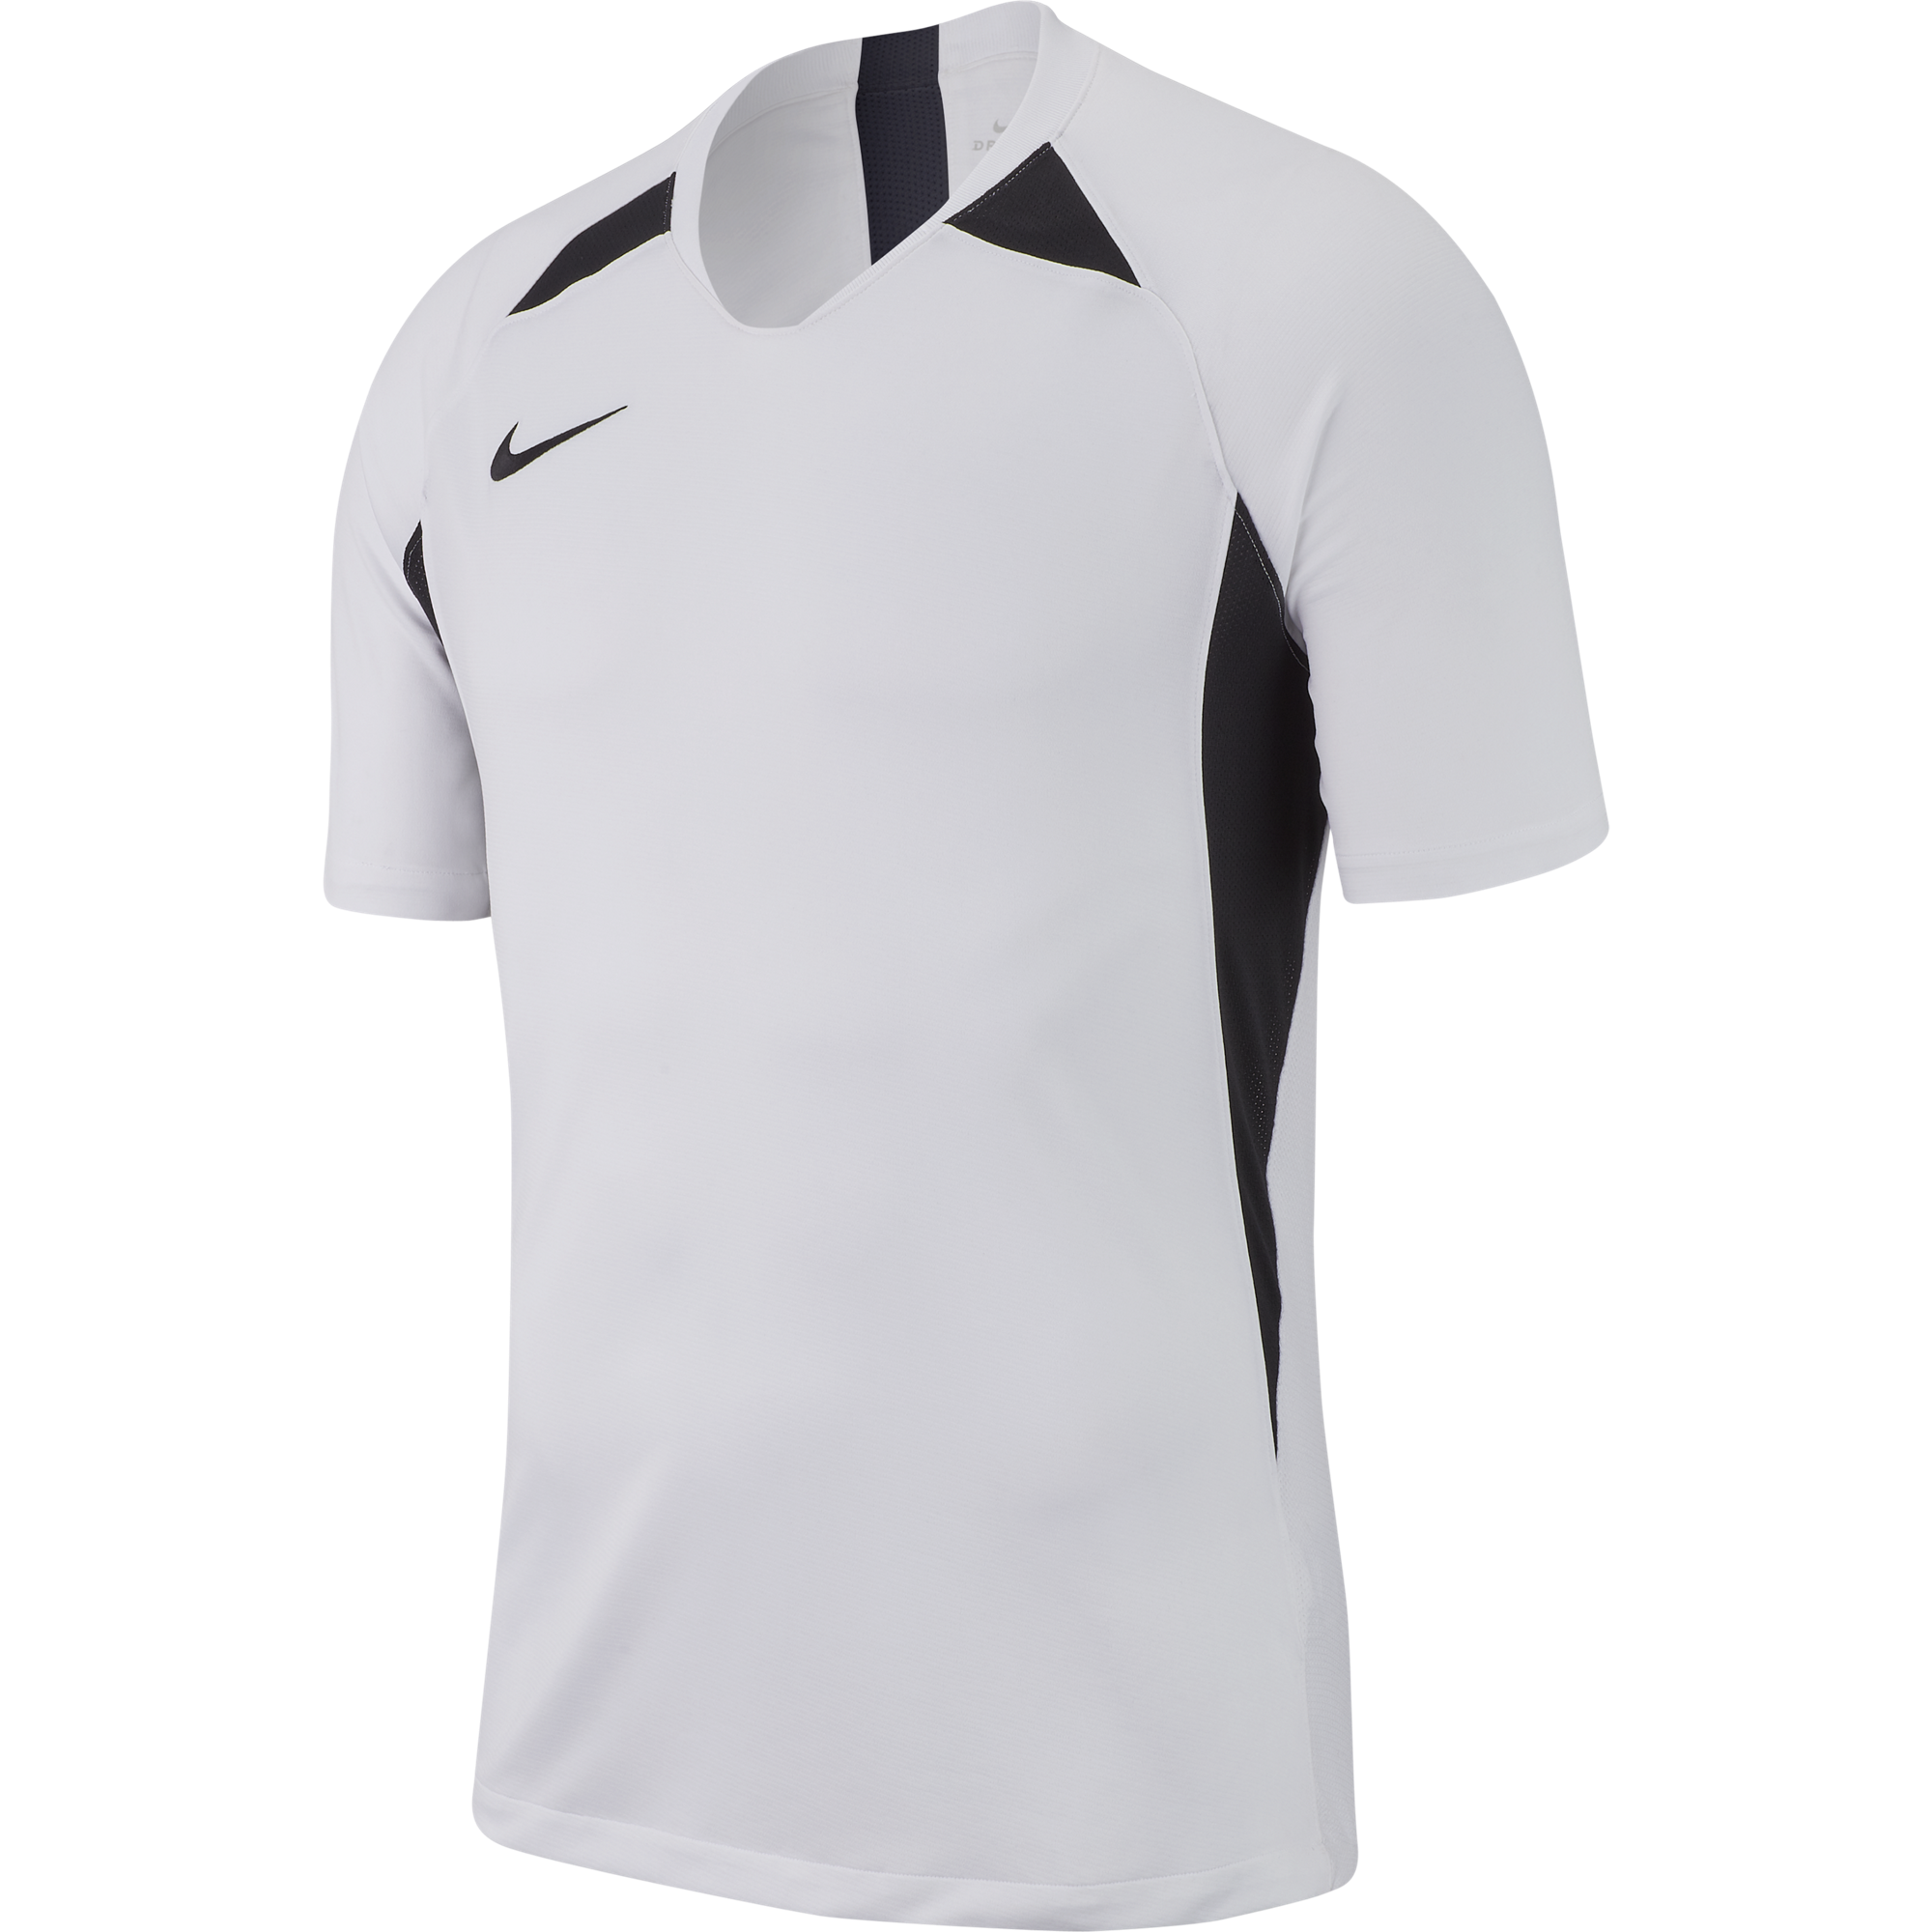 Nike Legend jersey (white/black)